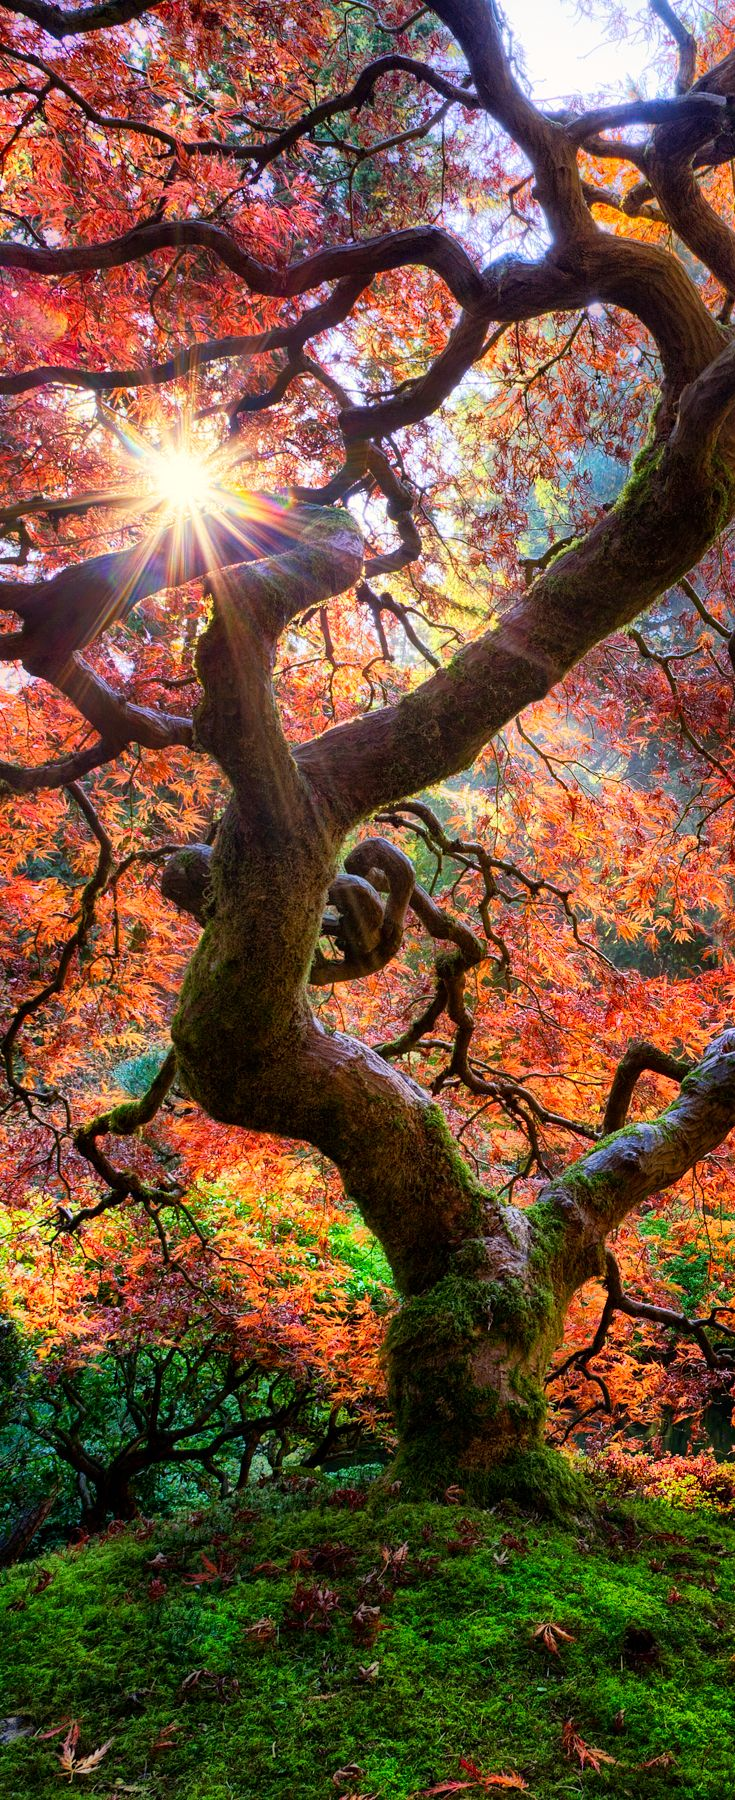 Portland-Japanese-Garden-Photography-Cropped-for-Pinterest-by-Michael-Matti-7.jpg 735×1,800 pixels